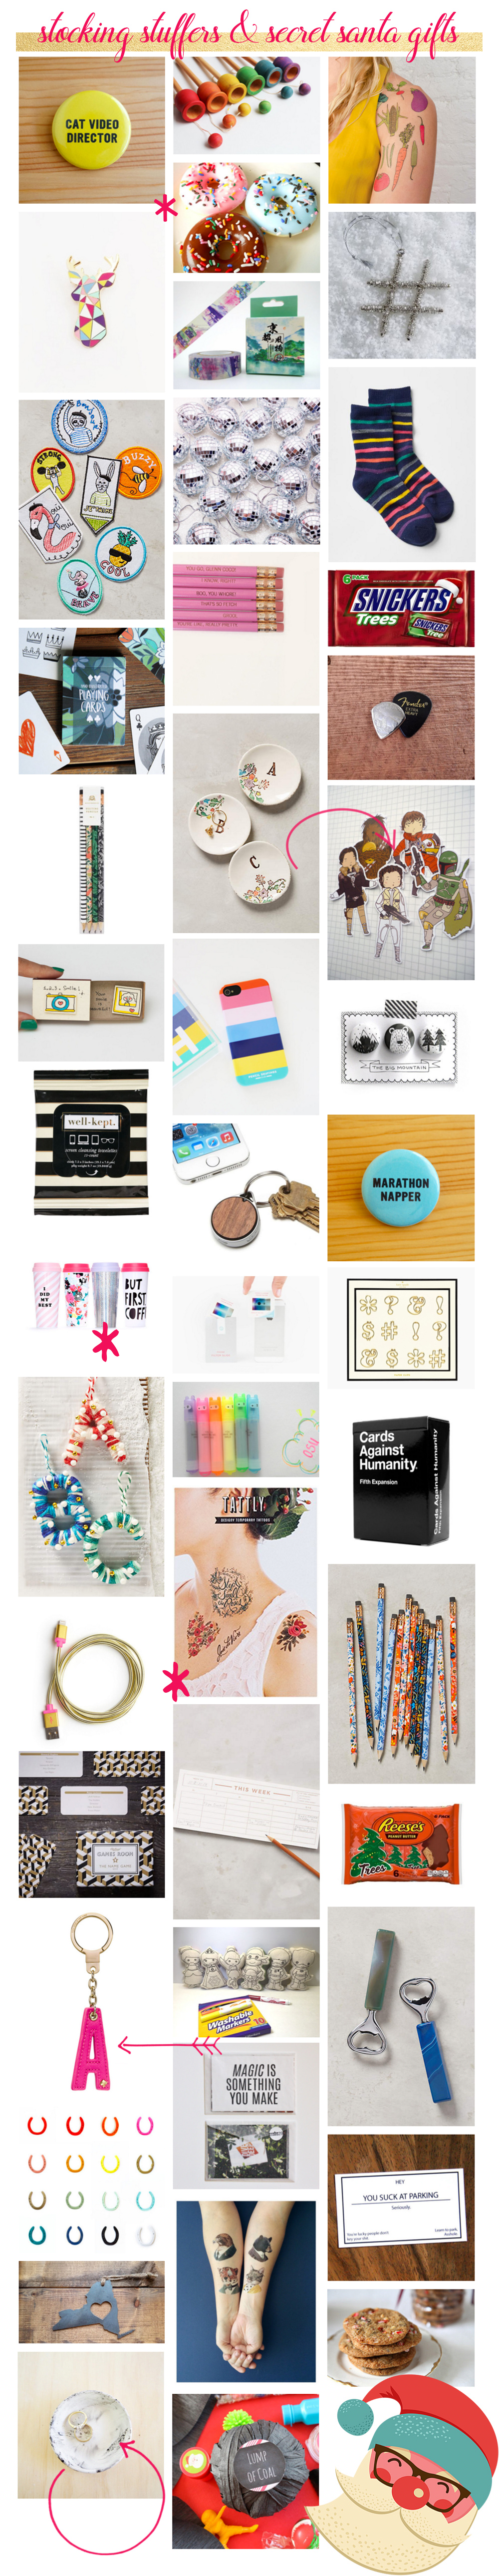 Stocking Stuffers + Secret Santa Gifts